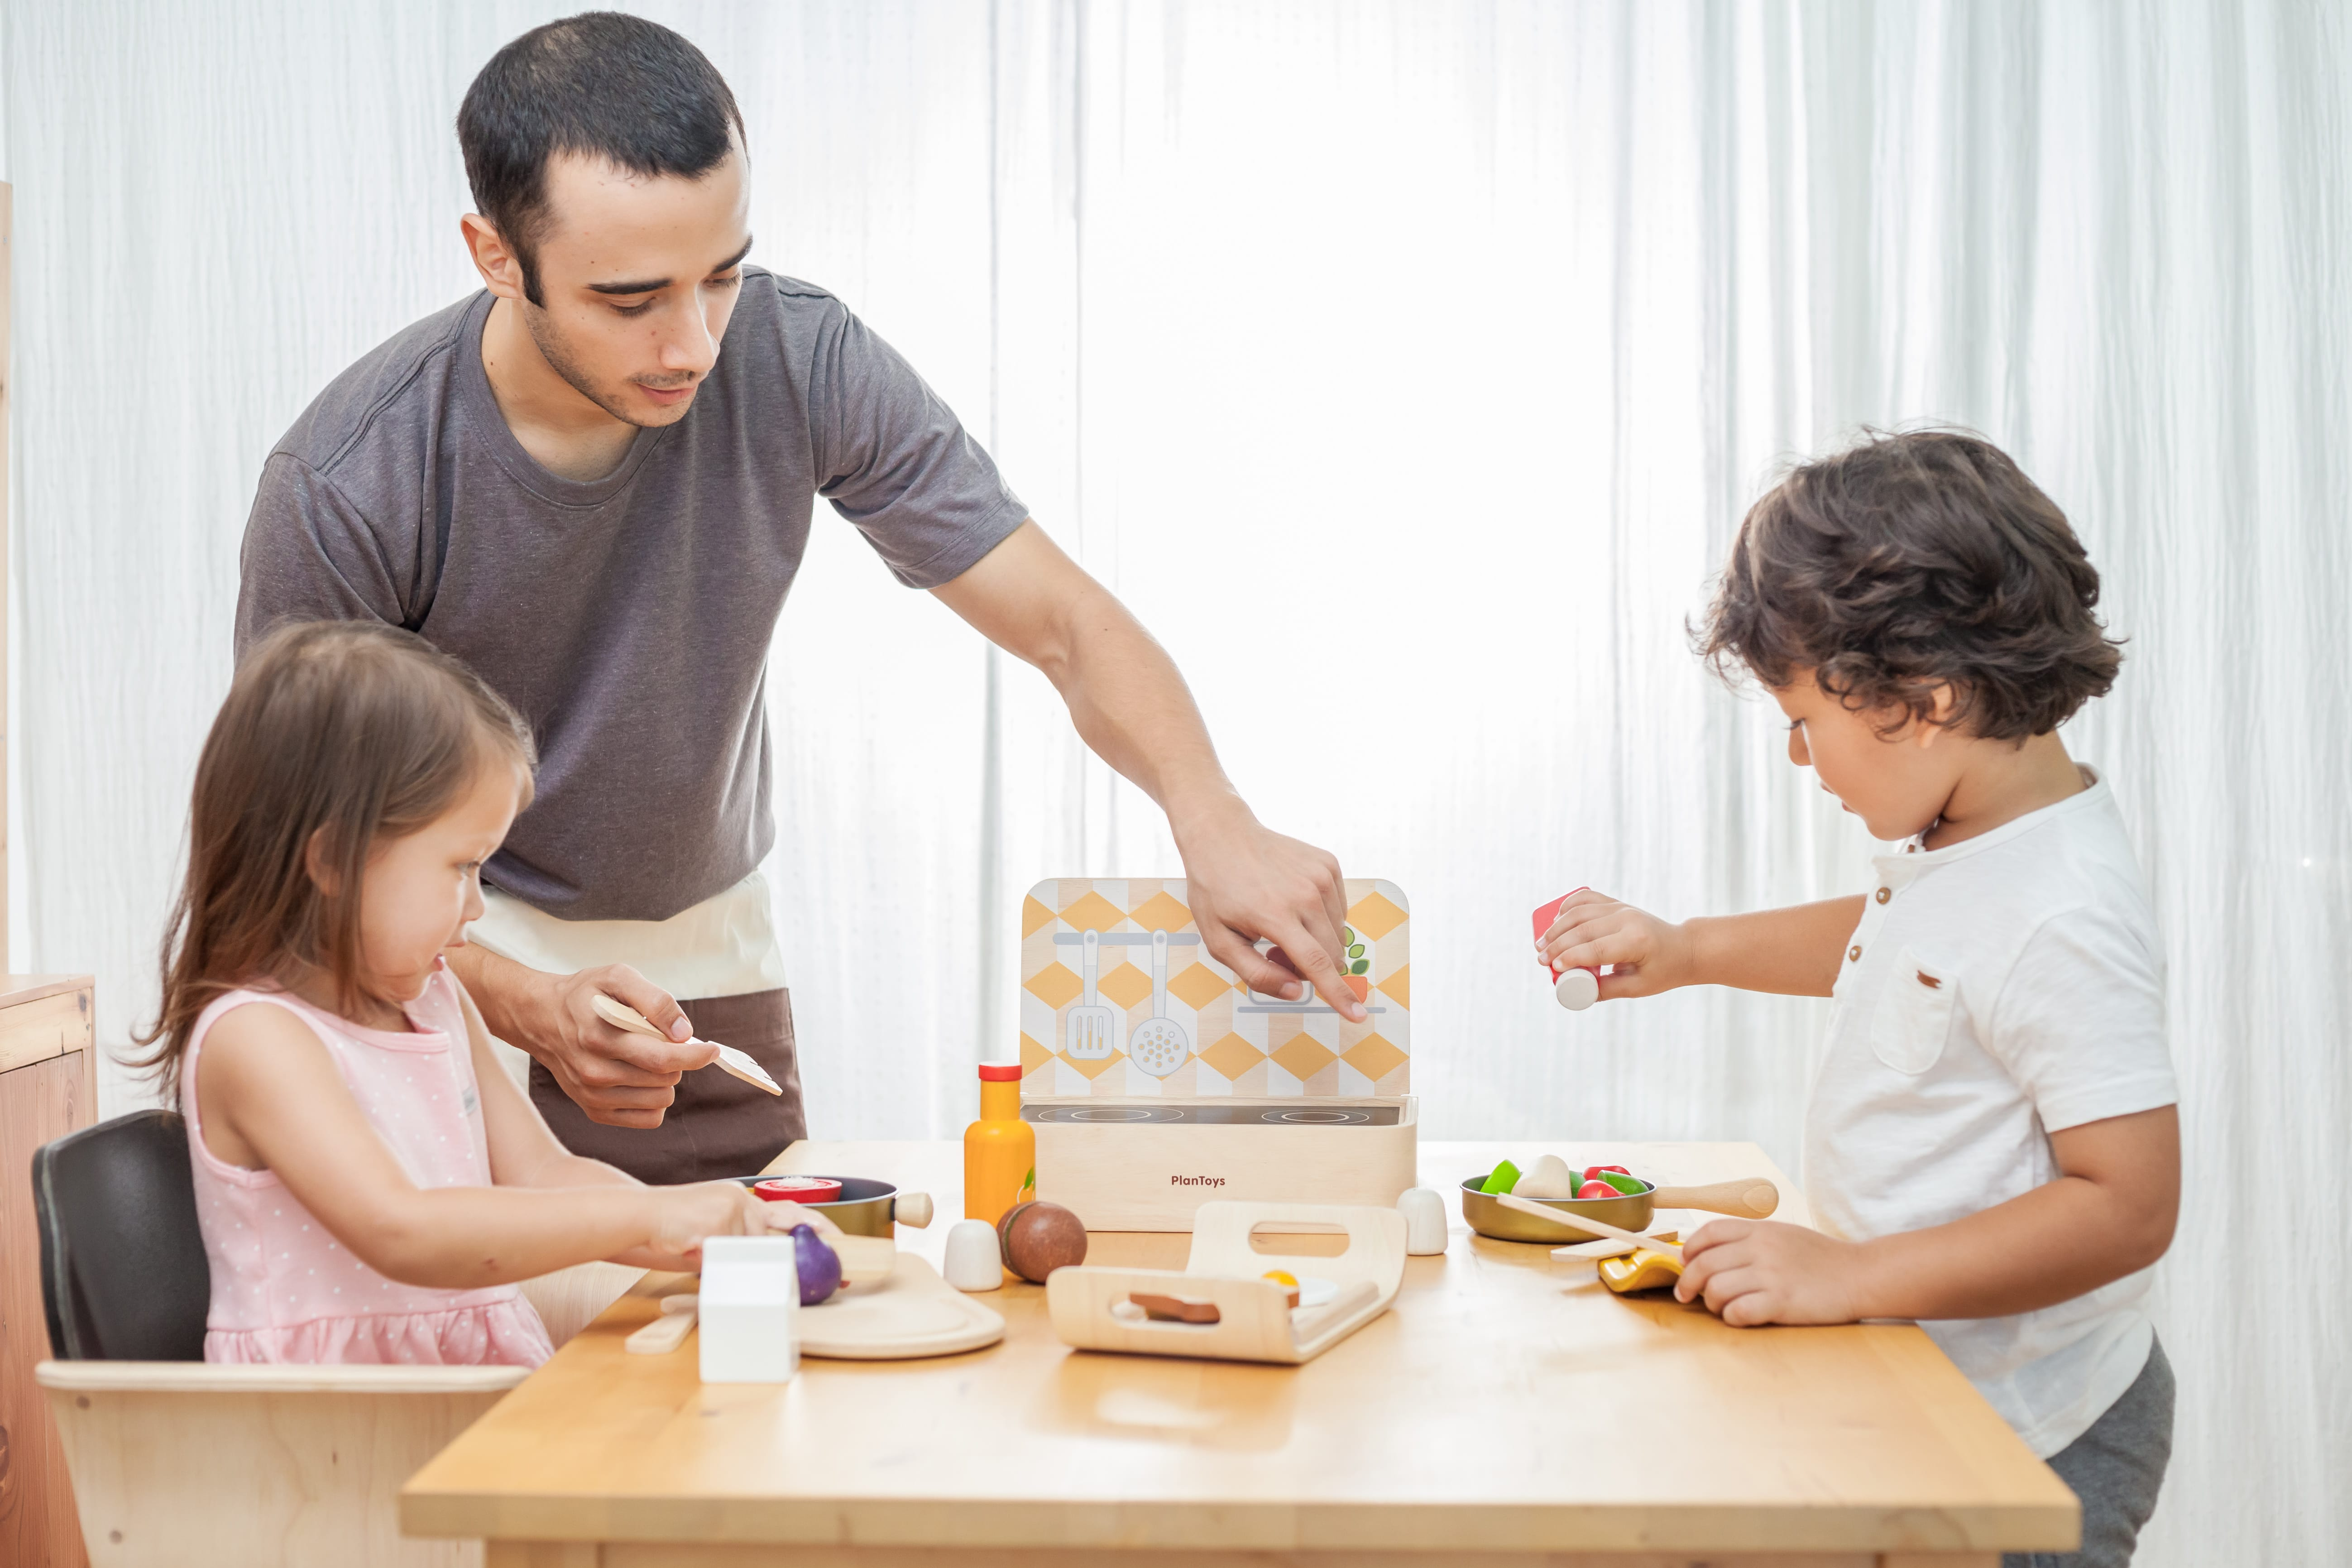 3432_PlanToys_FOOD_and_BEVERAGE_SET_Pretend_Play_Imagination_Language_and_Communications_Social_Fine_Motor_3yrs_Wooden_toys_Education_toys_Safety_Toys_Non-toxic_0.jpg